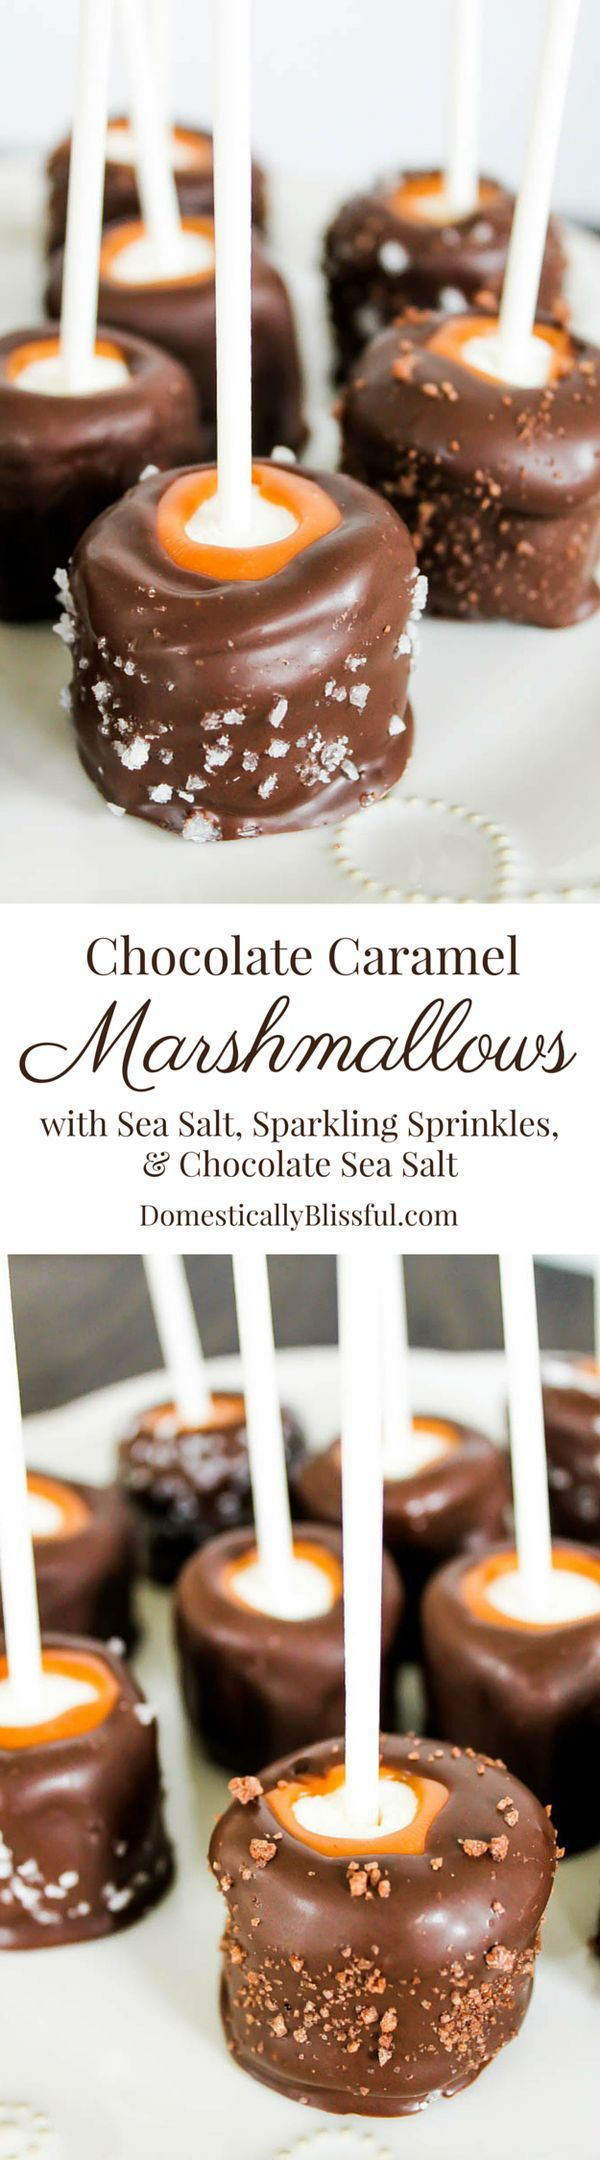 Chocolate Caramel Marshmallows with sea salt, sparkling sprinkles, and chocolate sea salt recipe. #desserts #chocolate